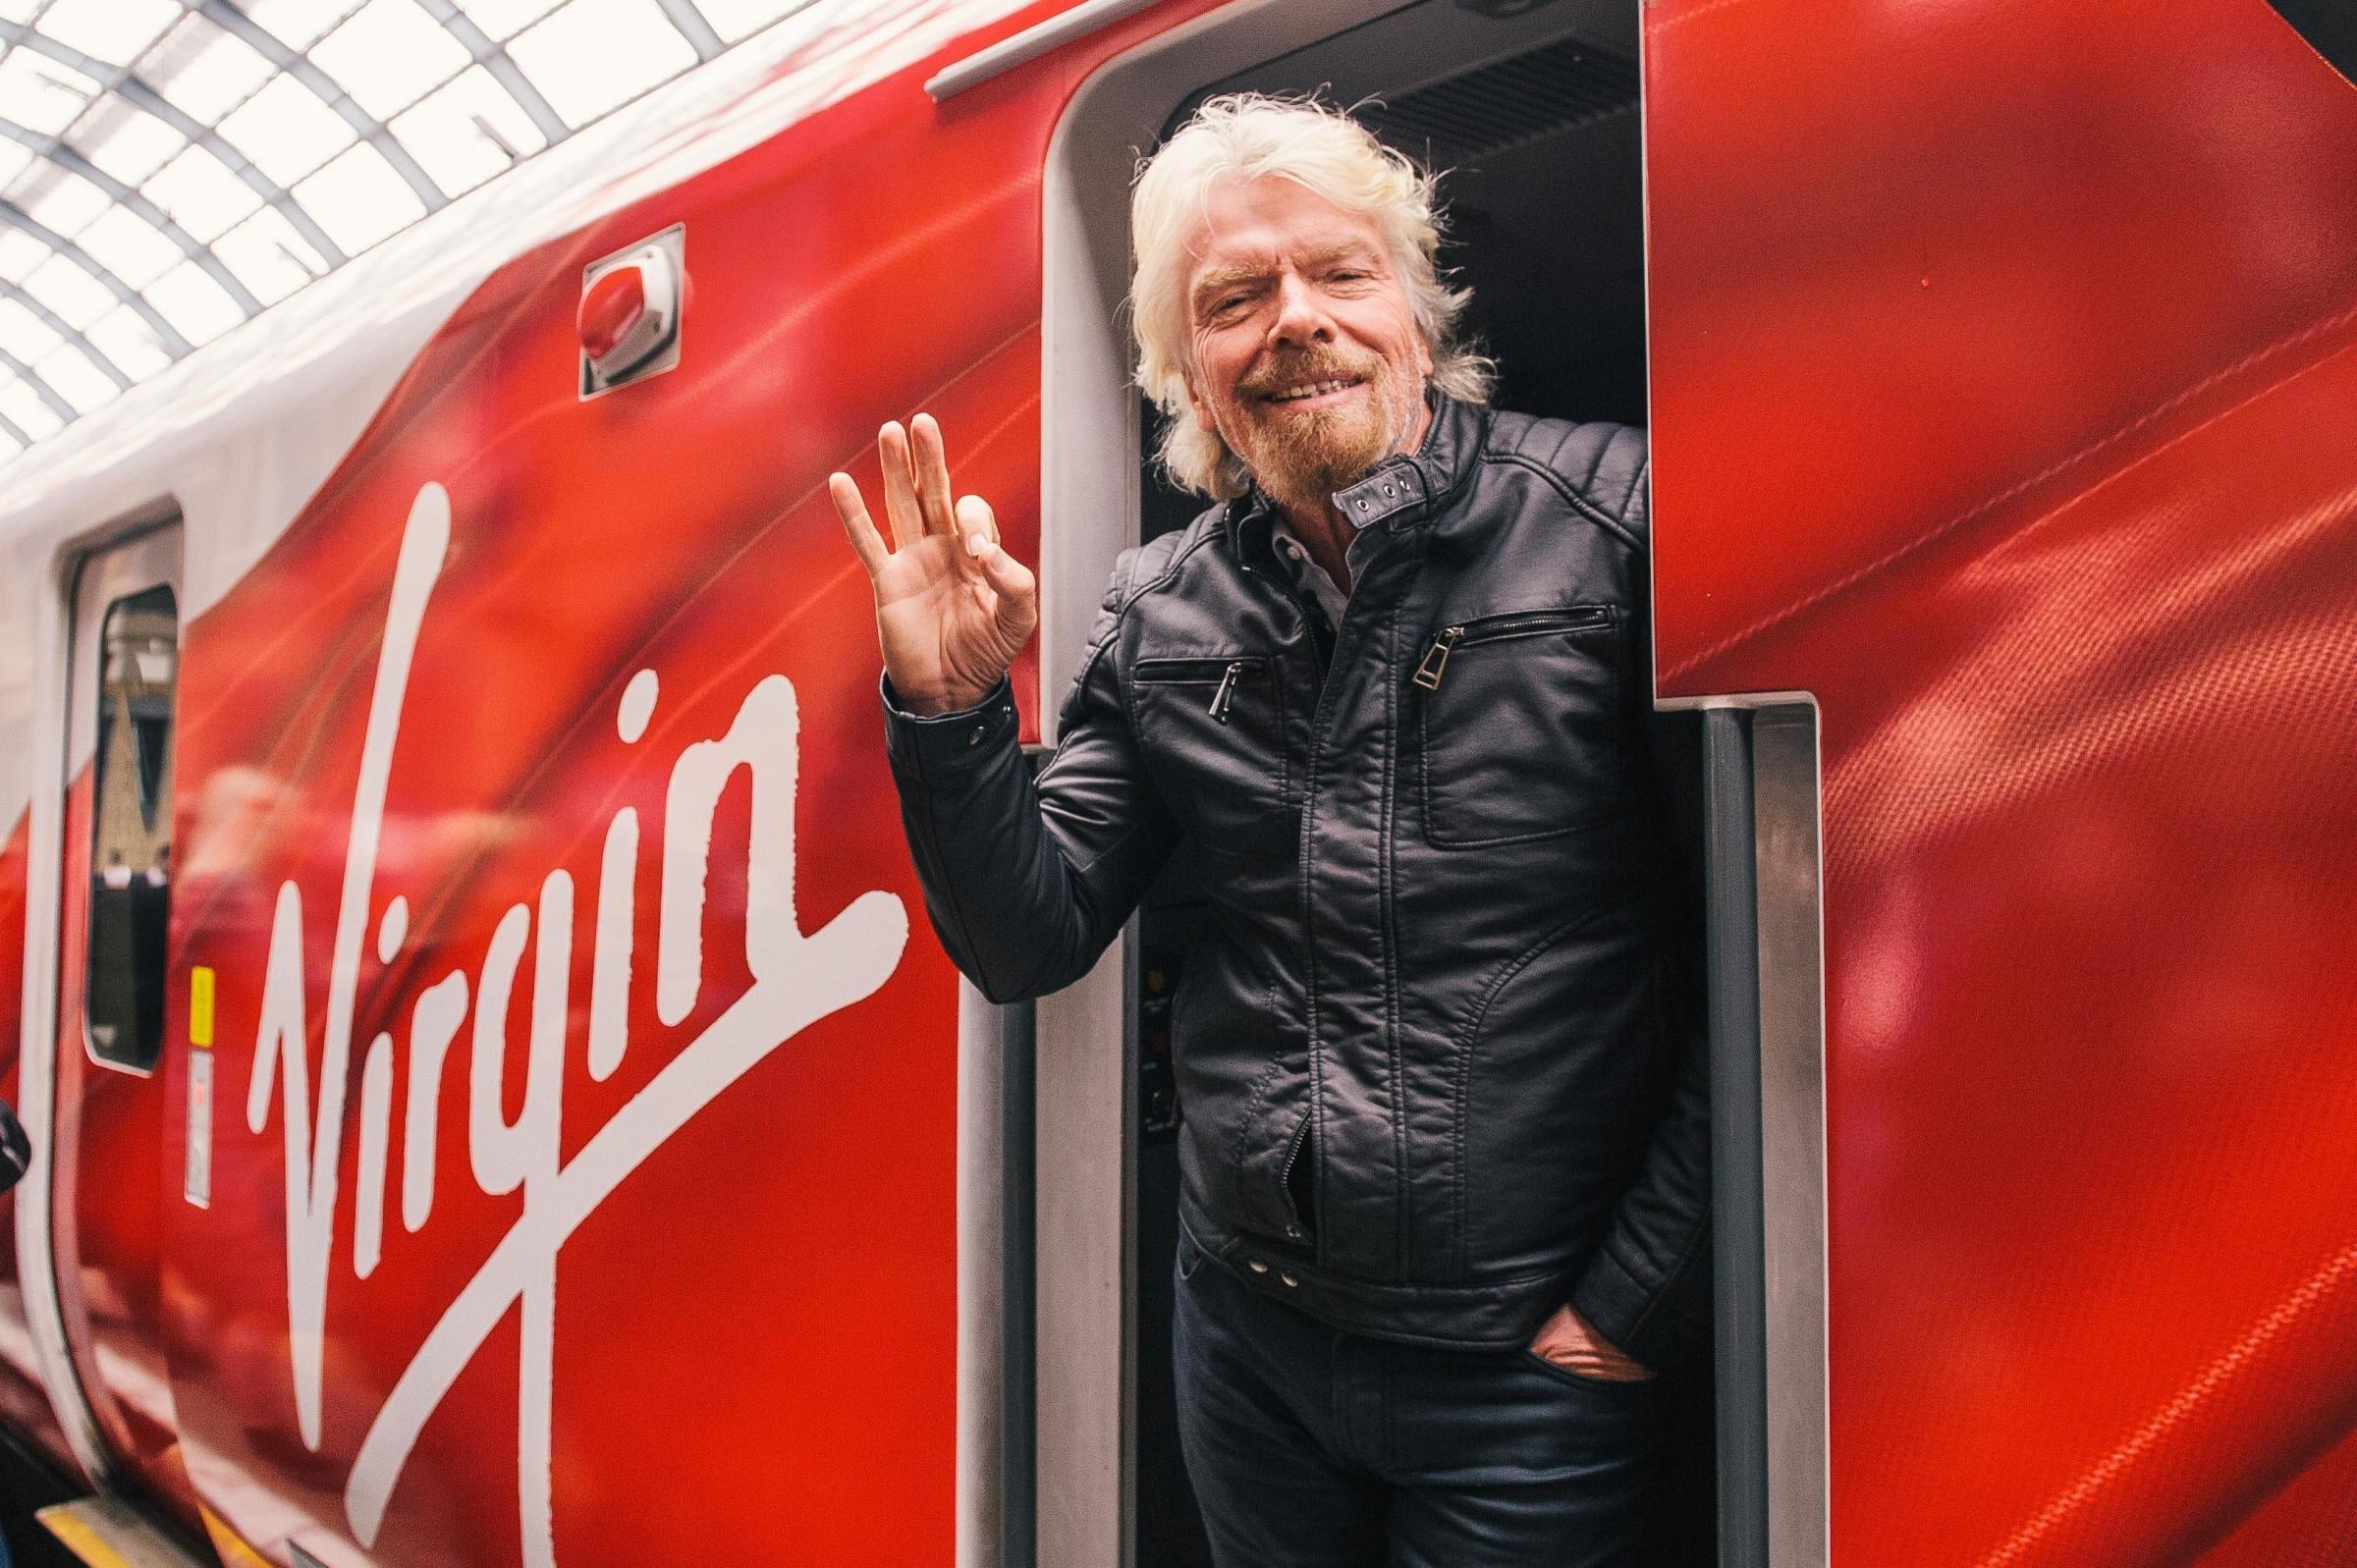 Undated handout file photo issued by Virgin Trains of Sir Richard Branson unveiling the Virgin Azuma, the first of their new fleet which will cut journey times on the East Coast Main Line by up to 22 minutes, at King's Cross station in London. Rail se